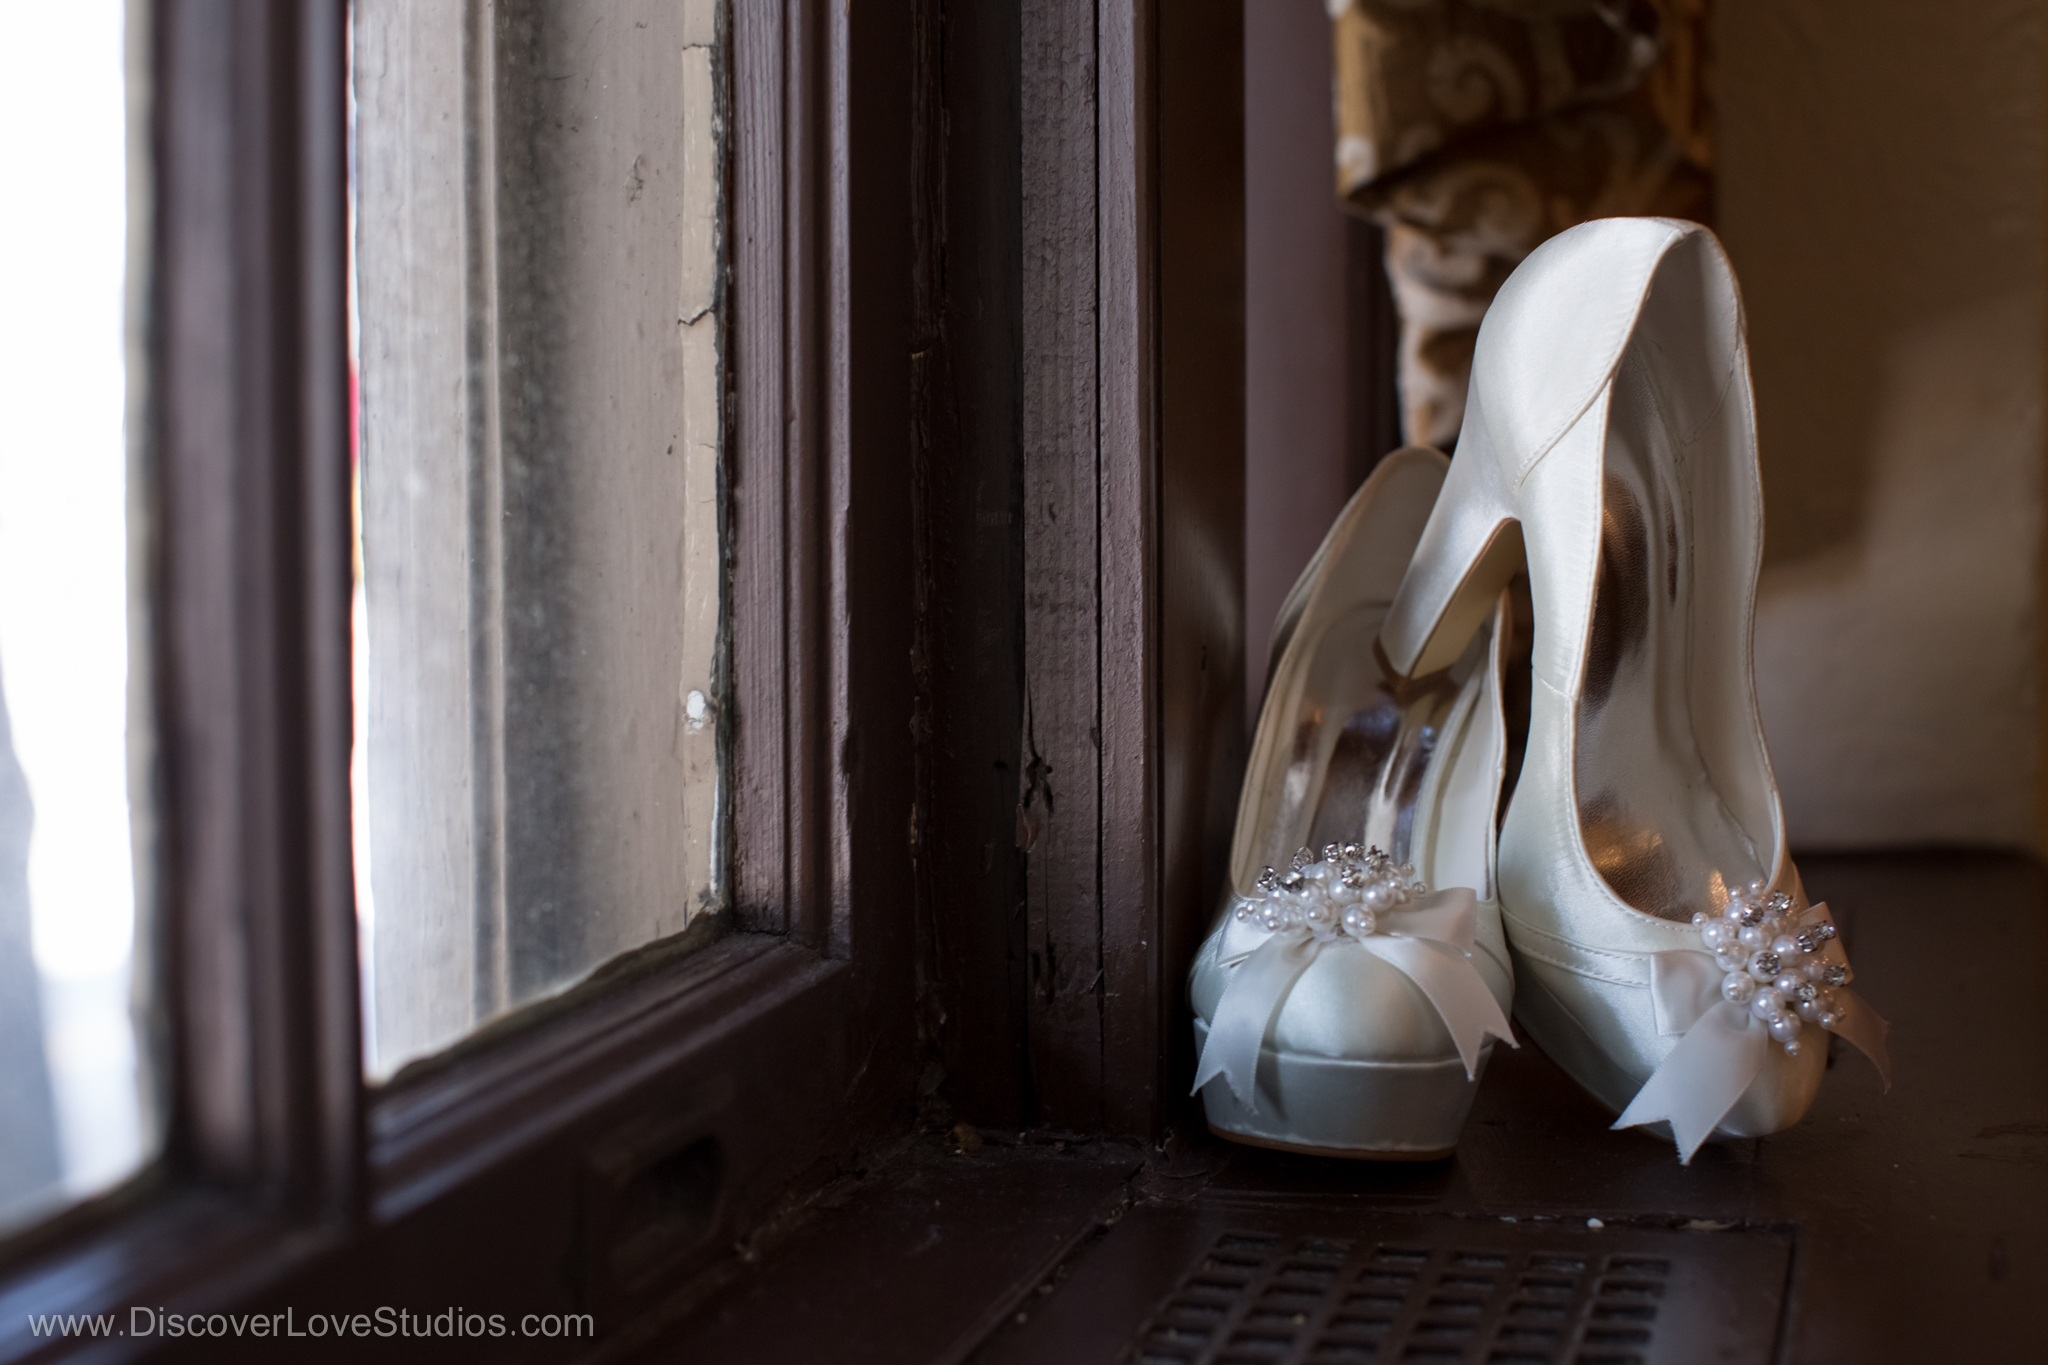 Bridal wedding shoes.